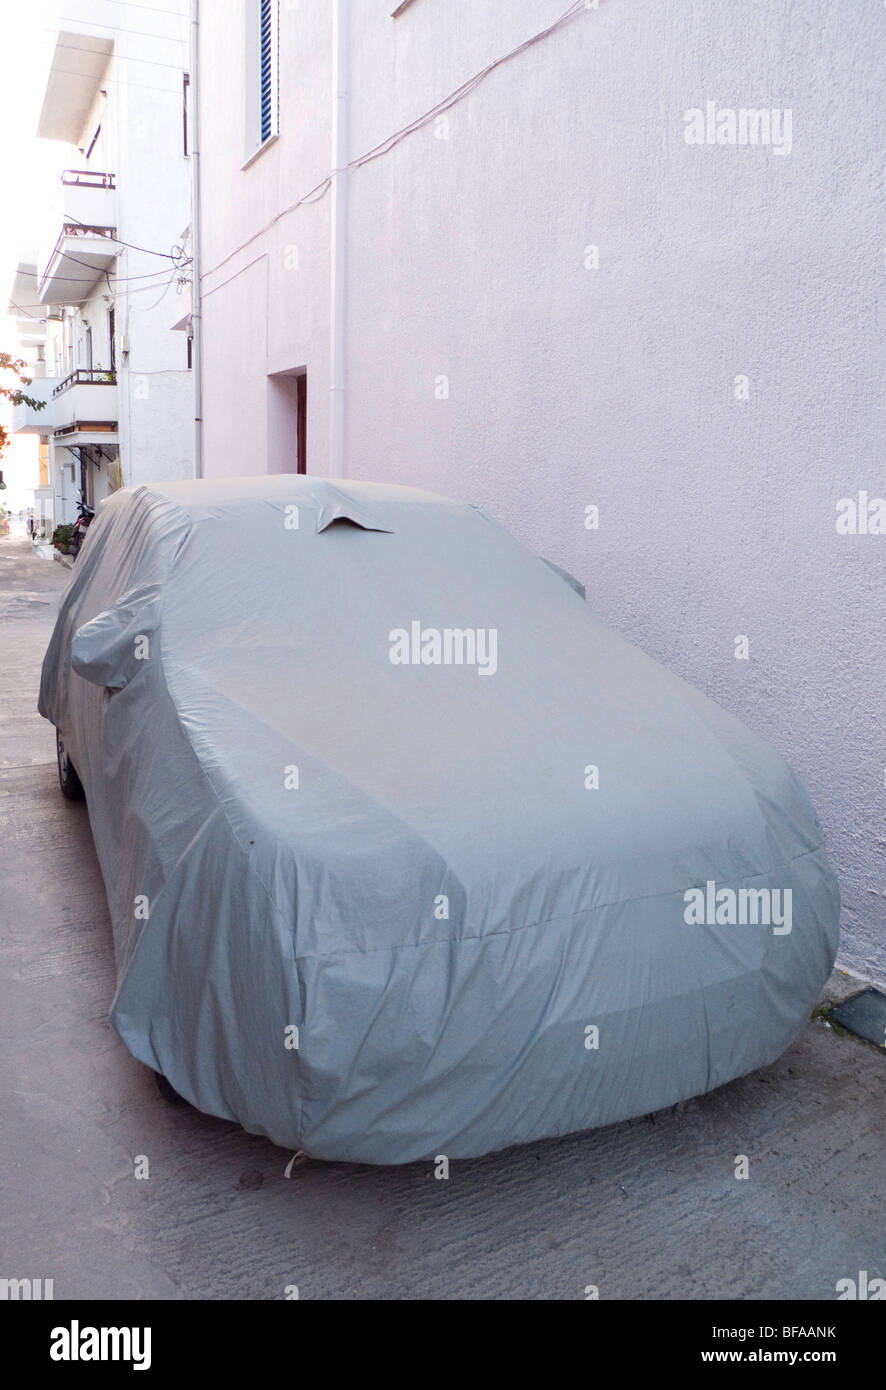 Covered car - Stock Image